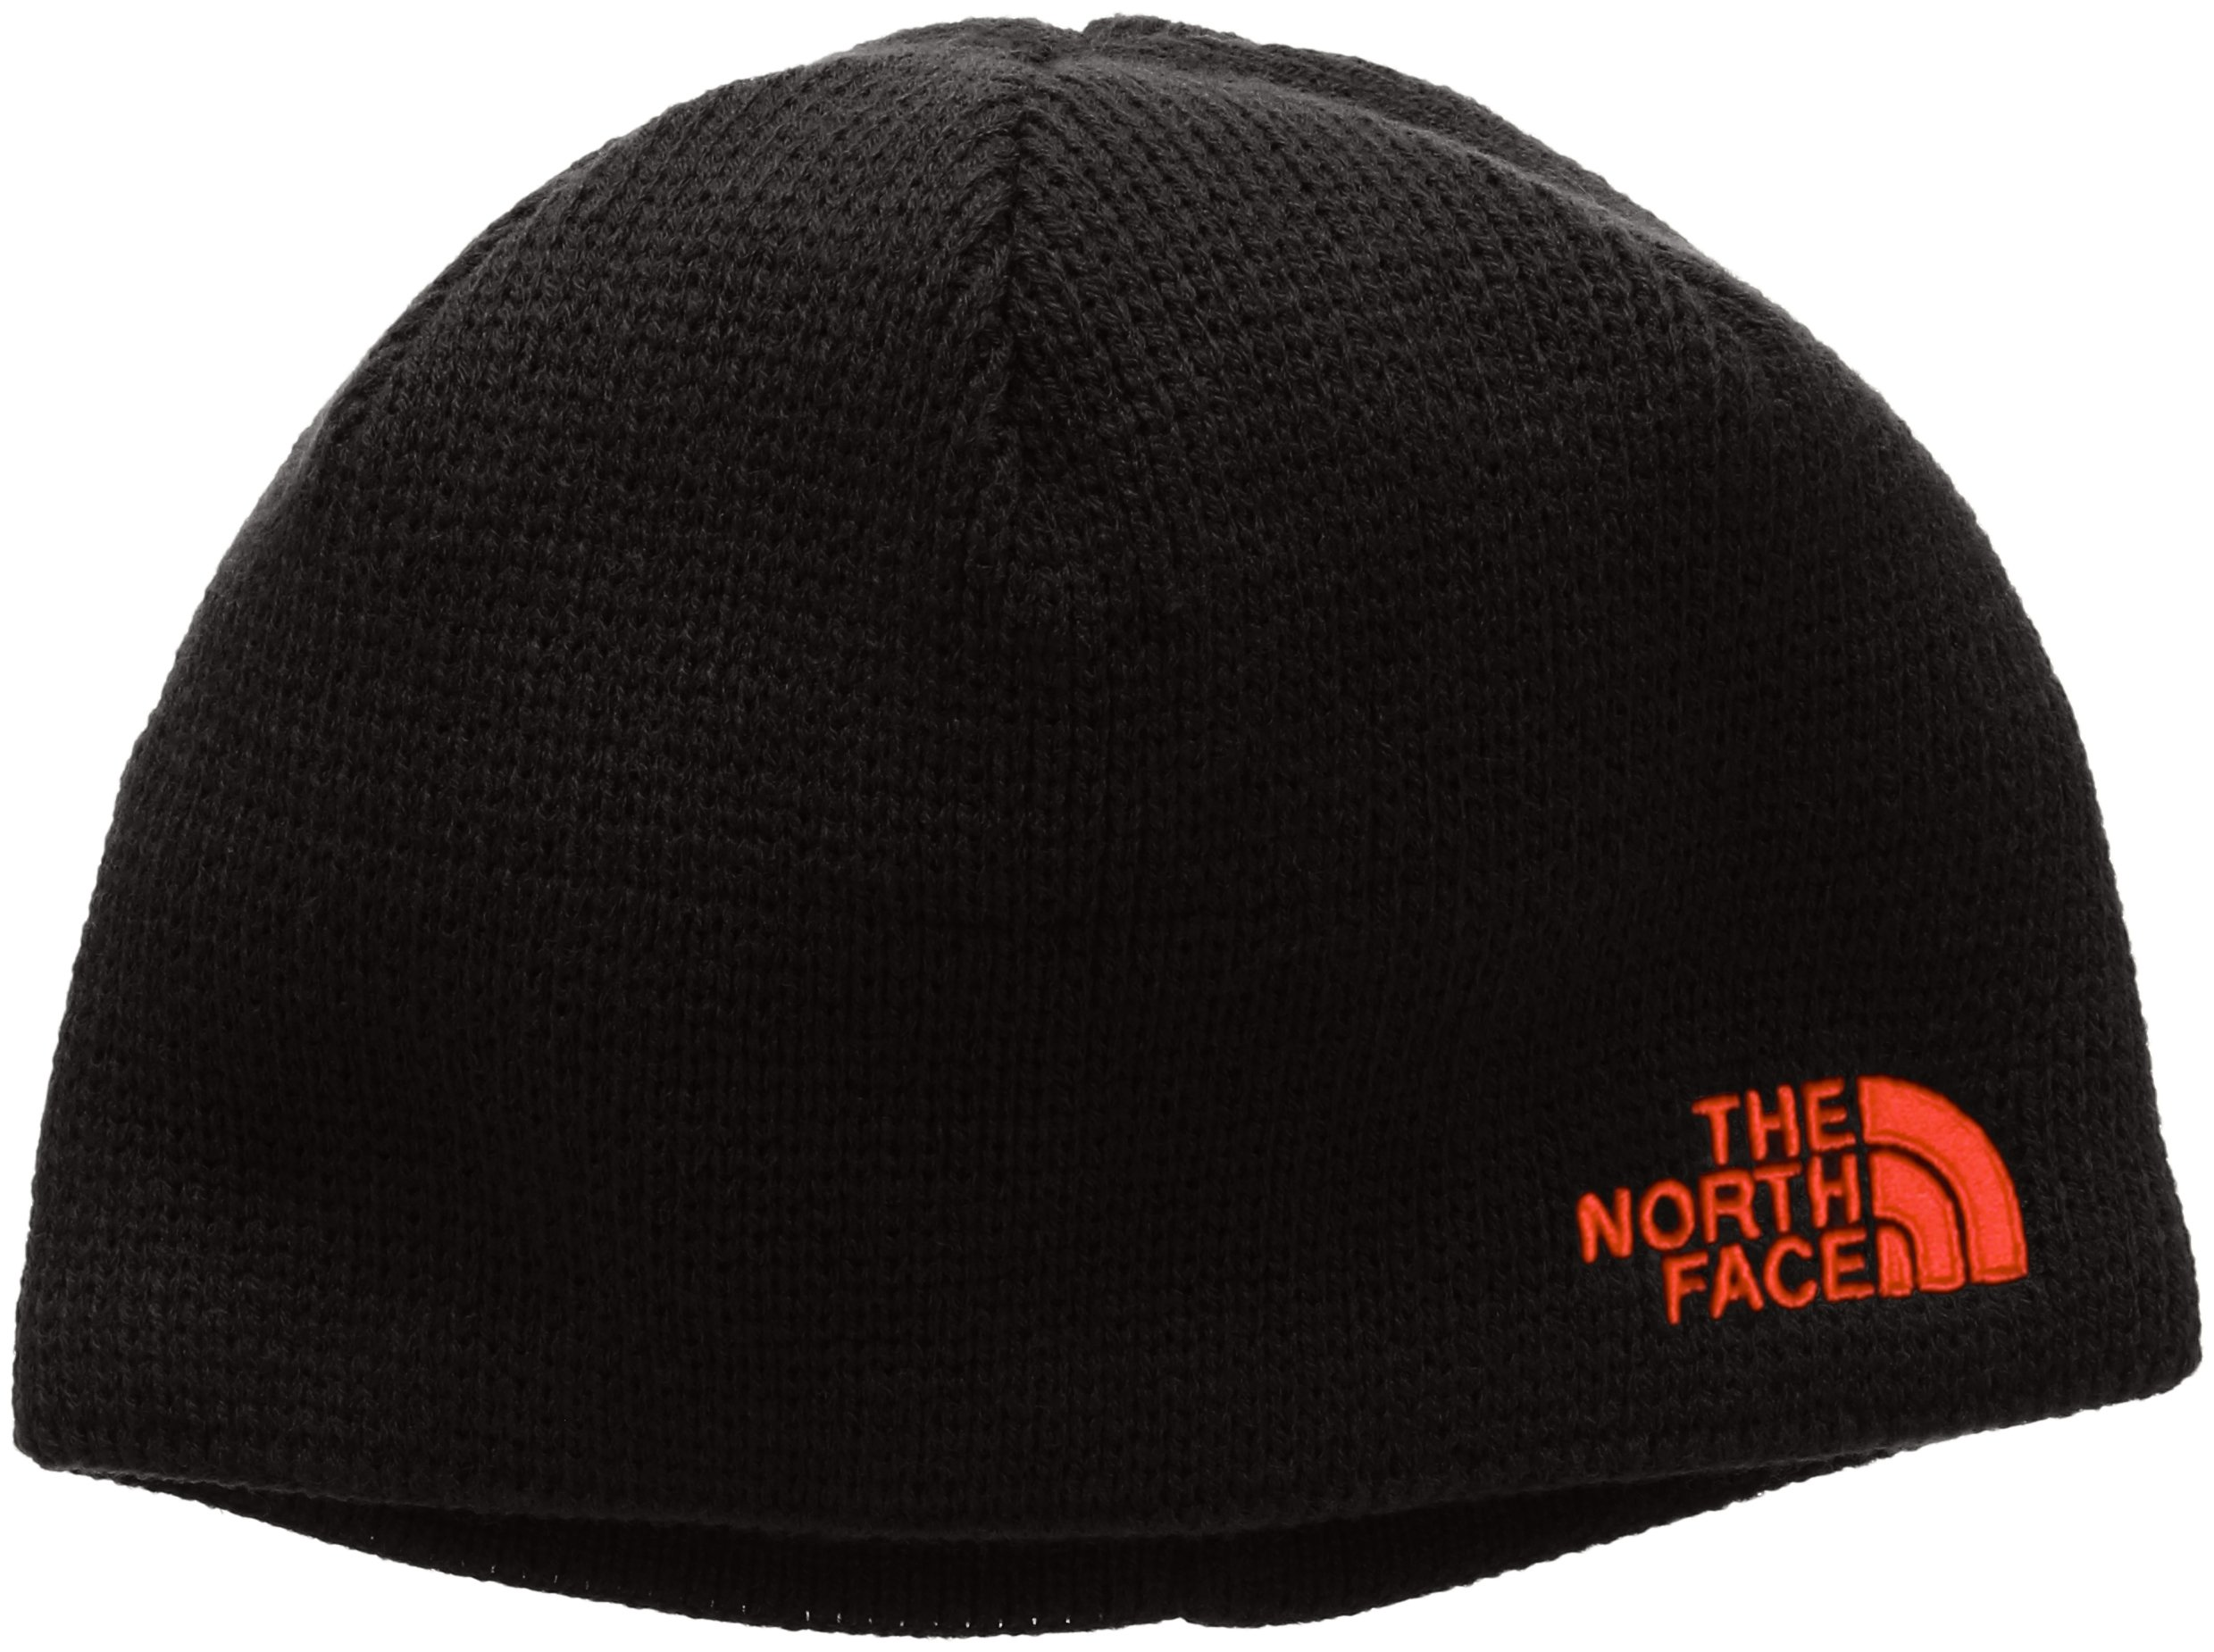 The North Face ''Bones'' Beanie (Youth Sizes) - black/red, medium